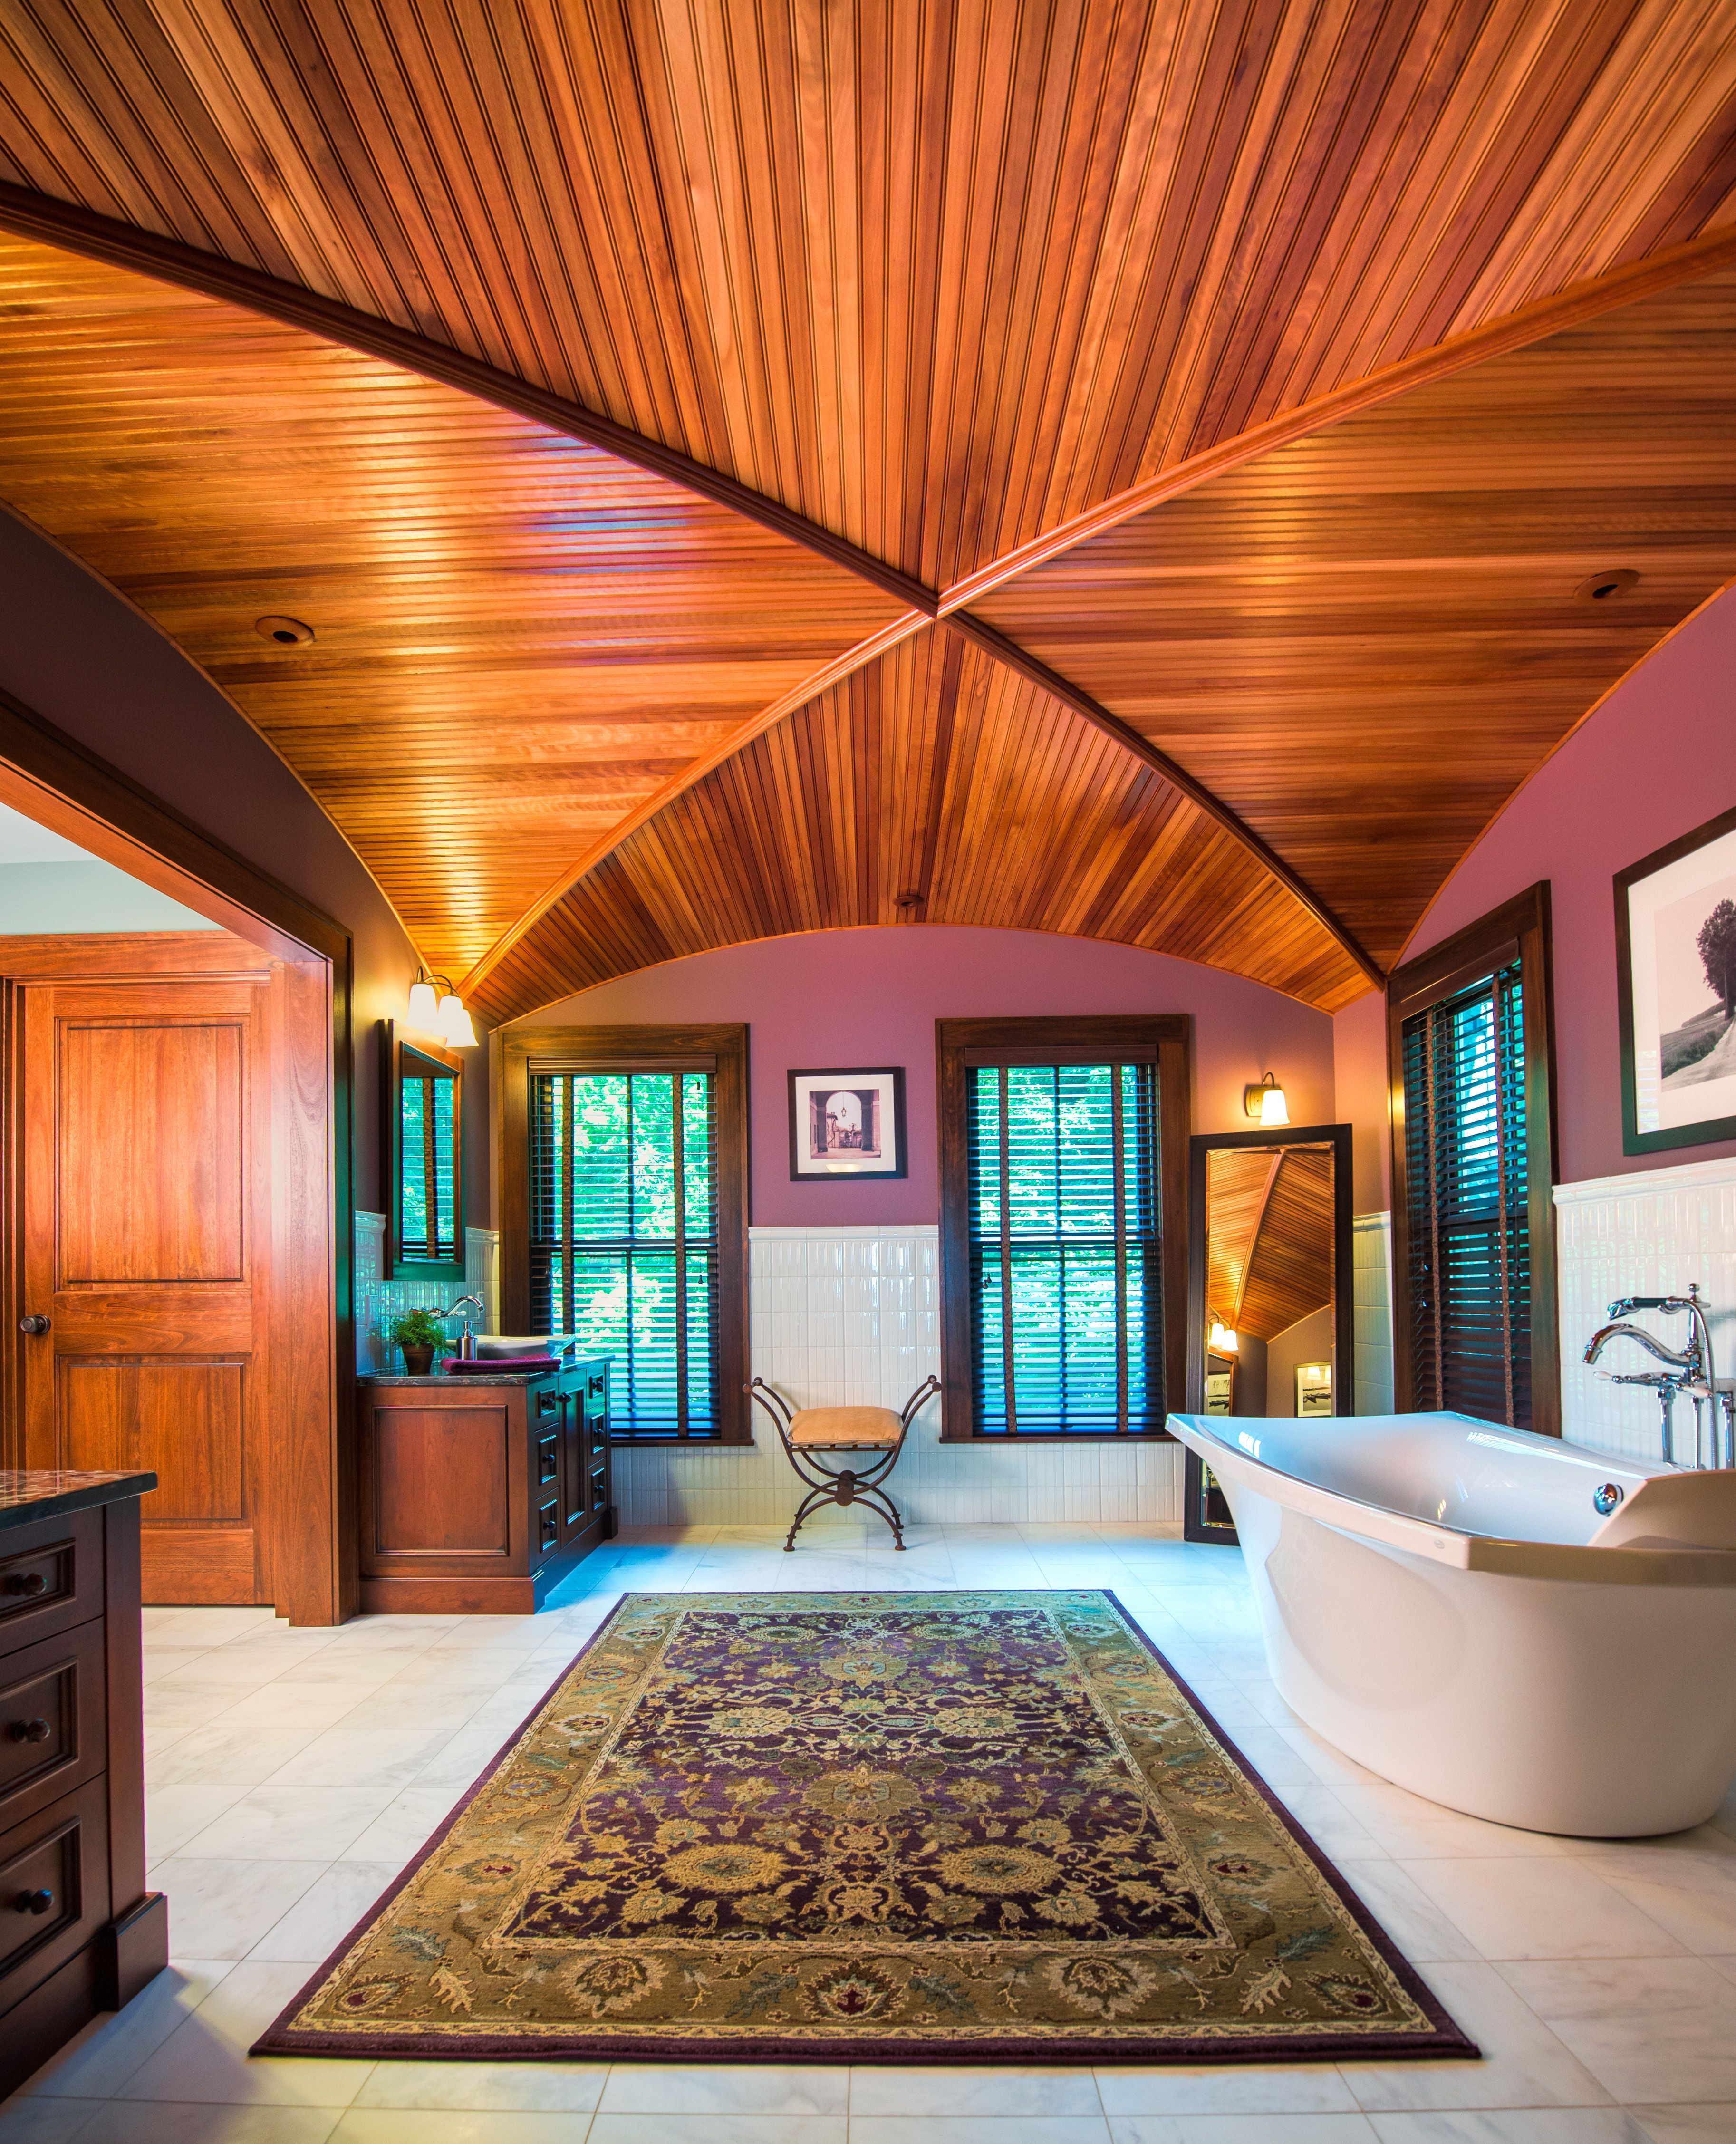 Master Bath and Wood Groin Vault Ceiling | Ceiling design ...